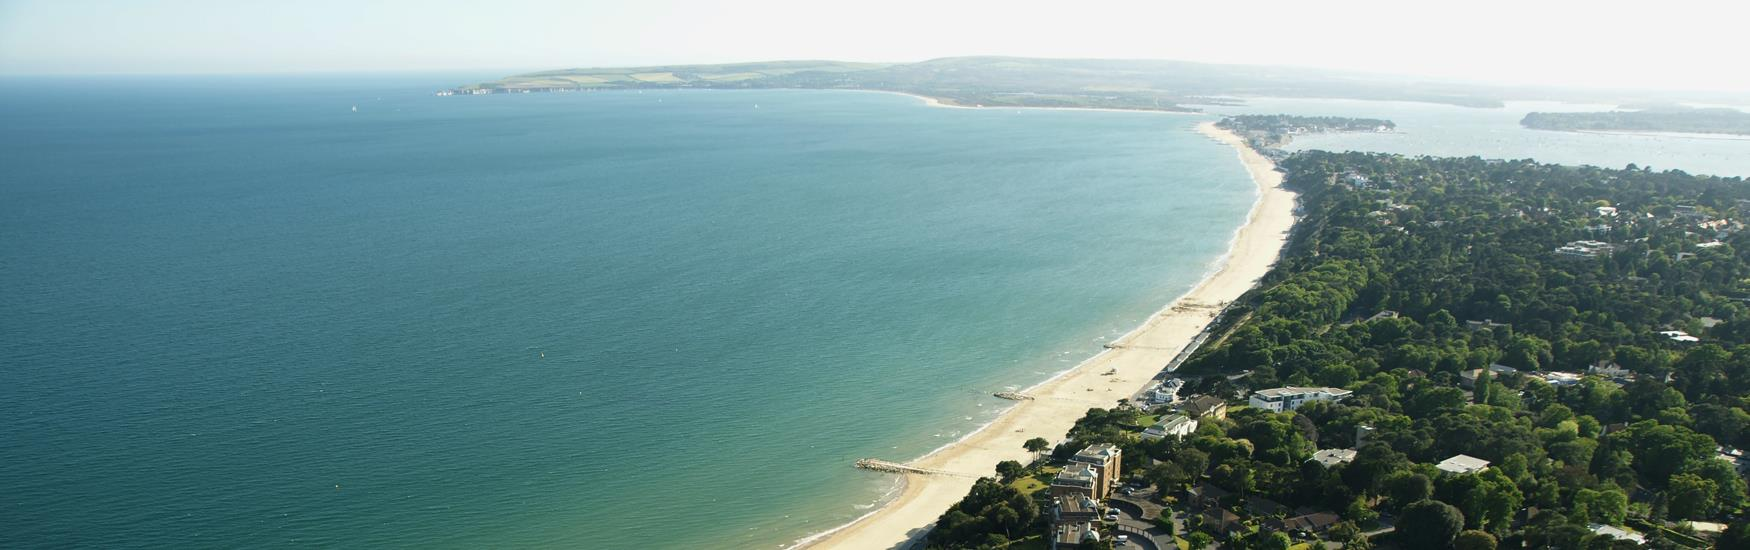 Image: Aerial View of Sandbanks, Poole © Poole Tourism